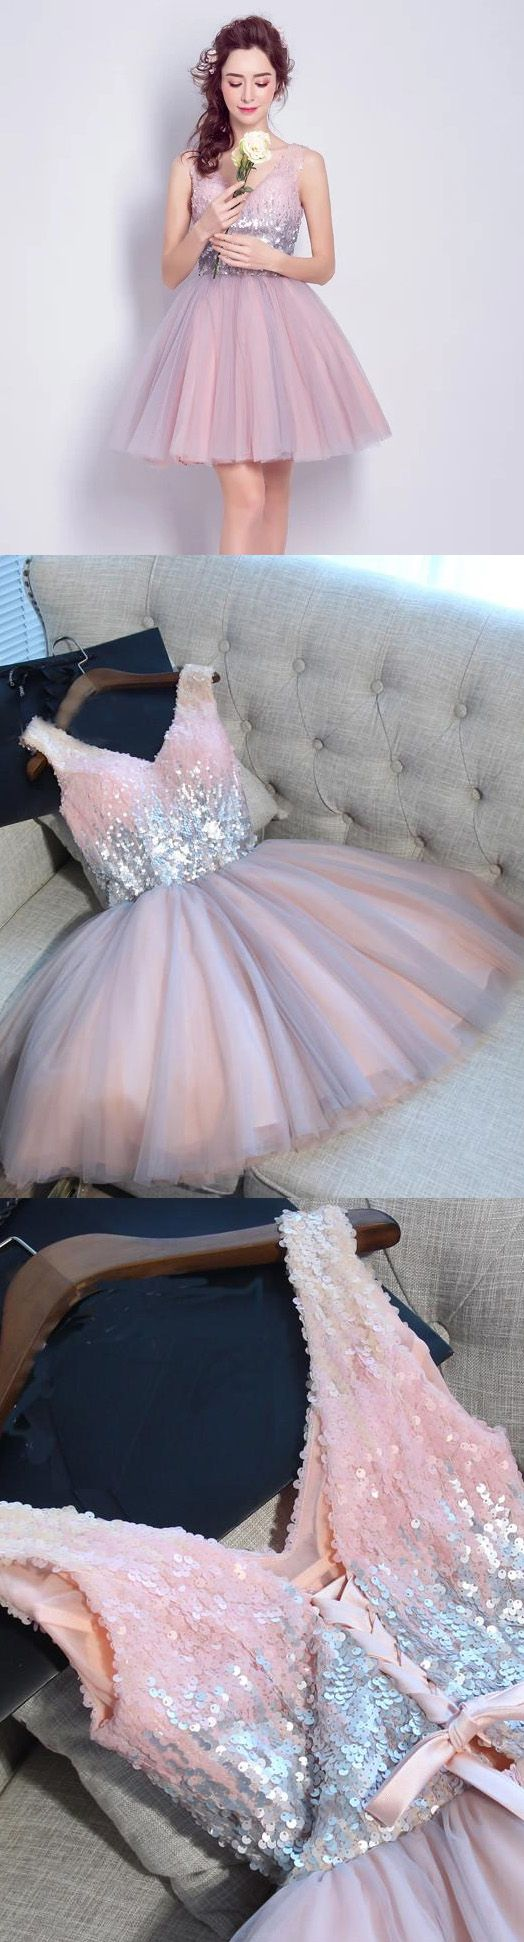 Custom Made Pink A-line/Princess Prom Party Dresses Admirable Short V-Neck Prom Dresses With Bandage Lace Up Dresses